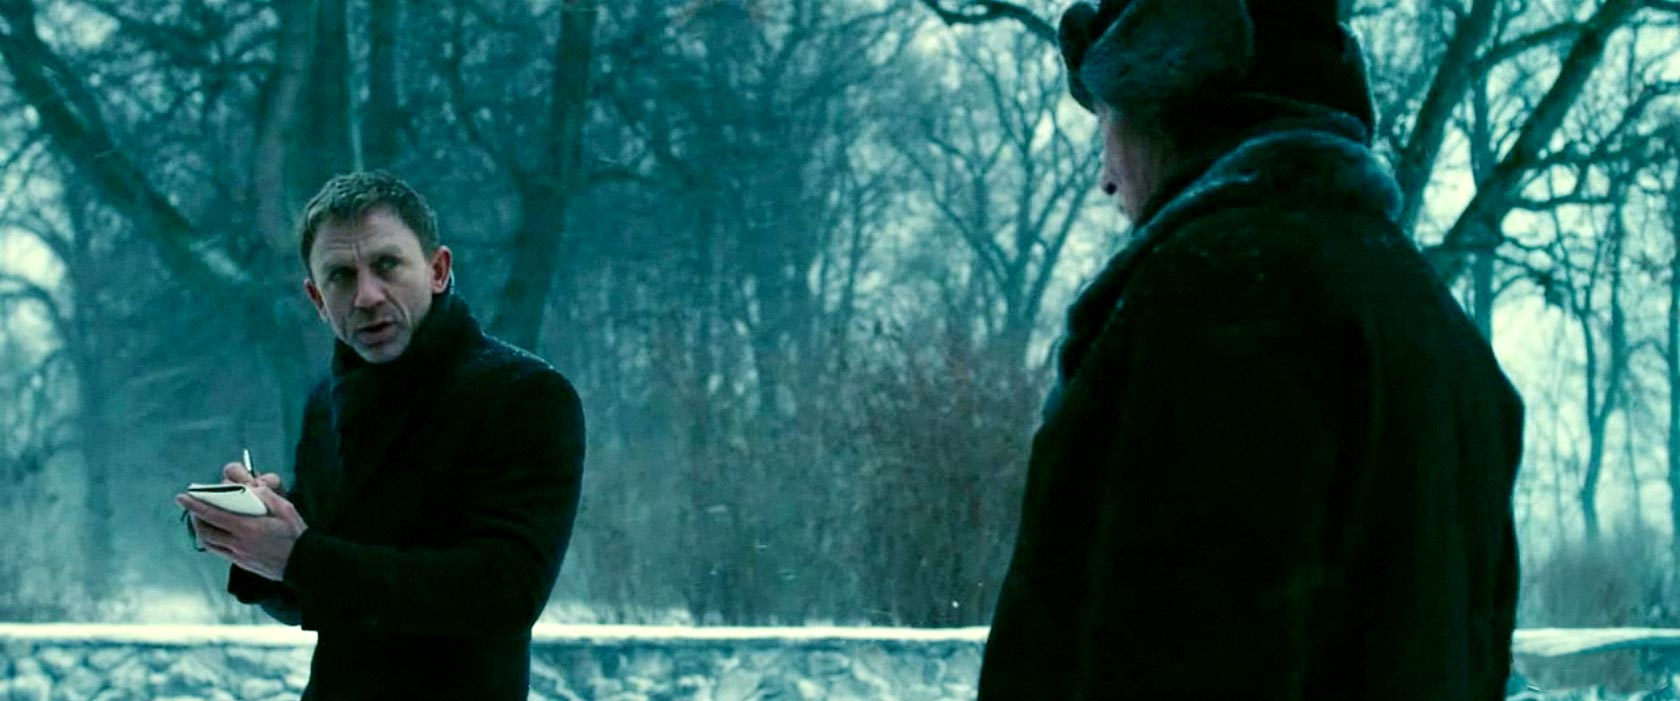 Wilmington on movies the girl with the dragon tattoo fincher